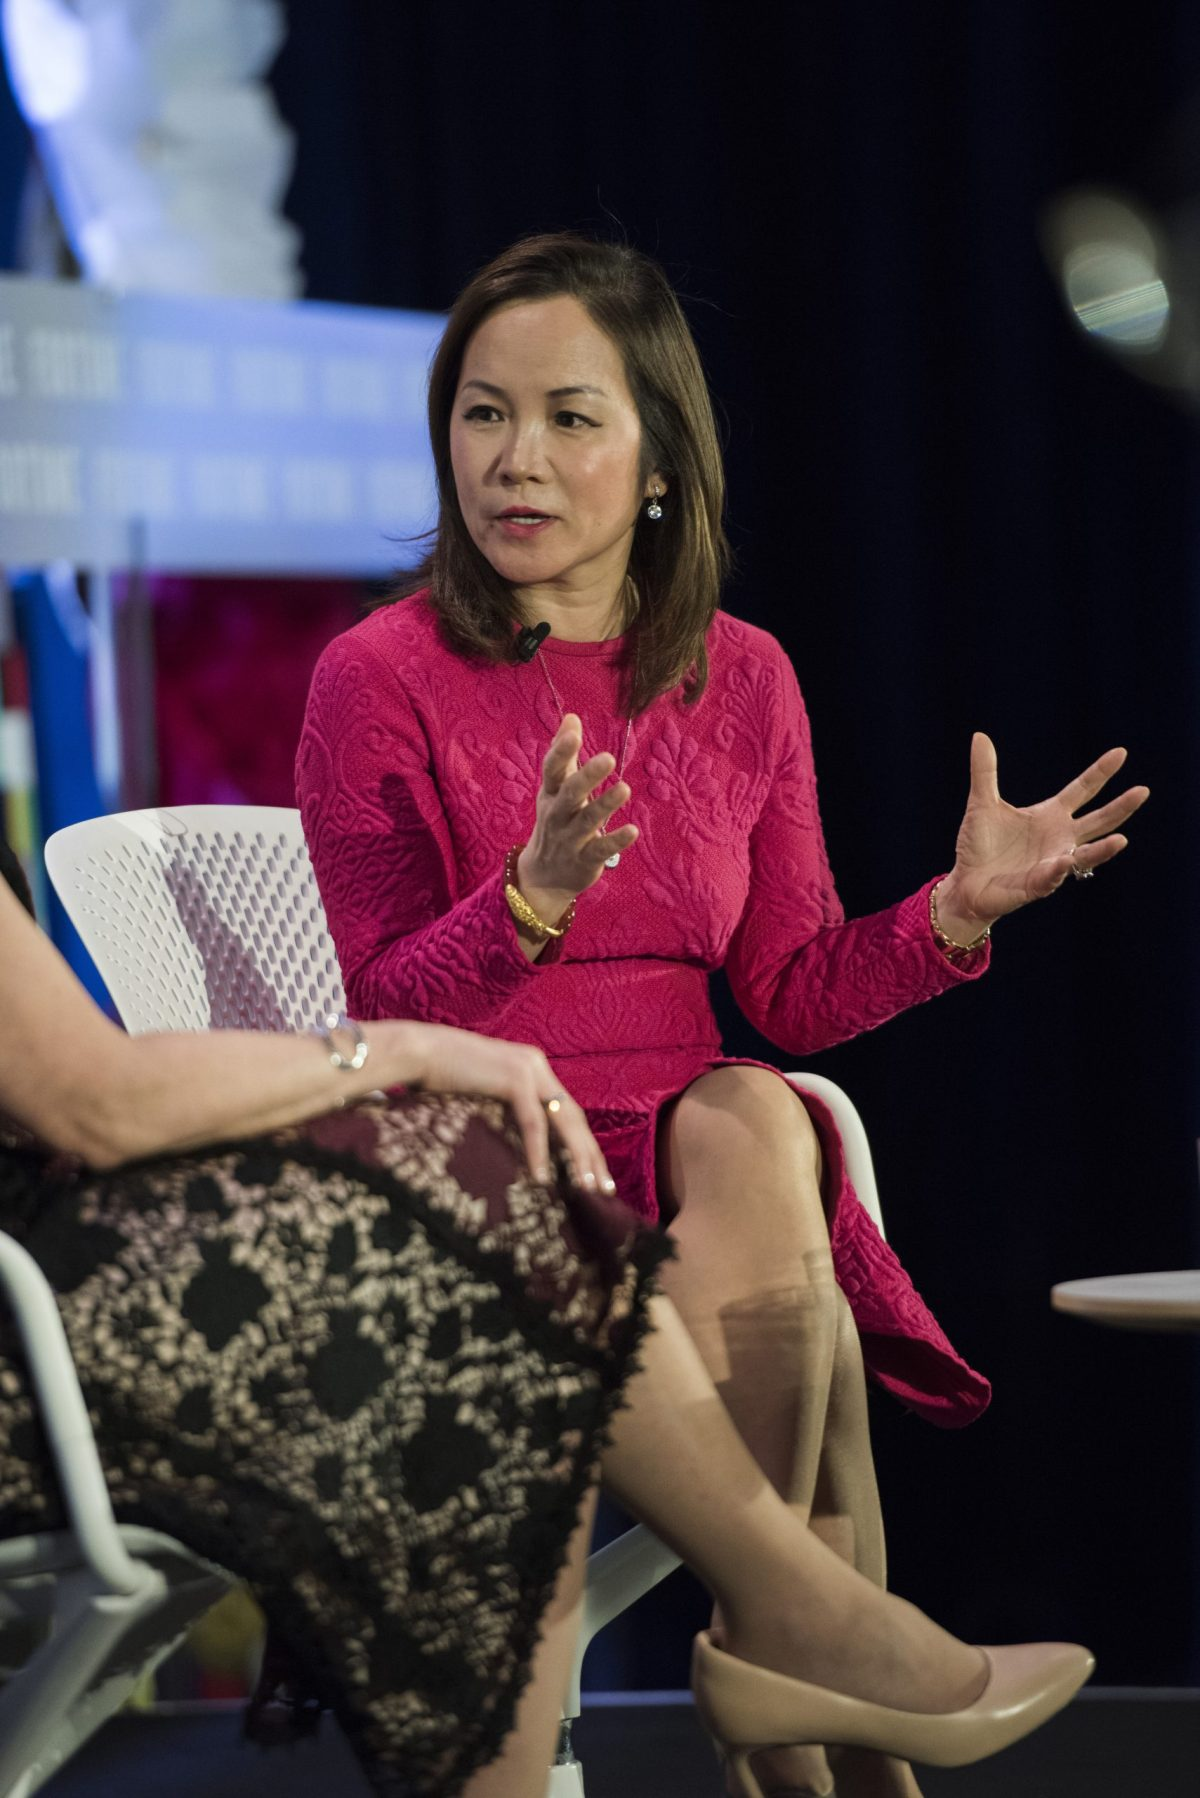 Mei Xu, the co-founder and CEO of Pacific Trade International, makes a keynote speech on Fortune Most Powerful Women summit on February 28, 2016. Photo: Fortune